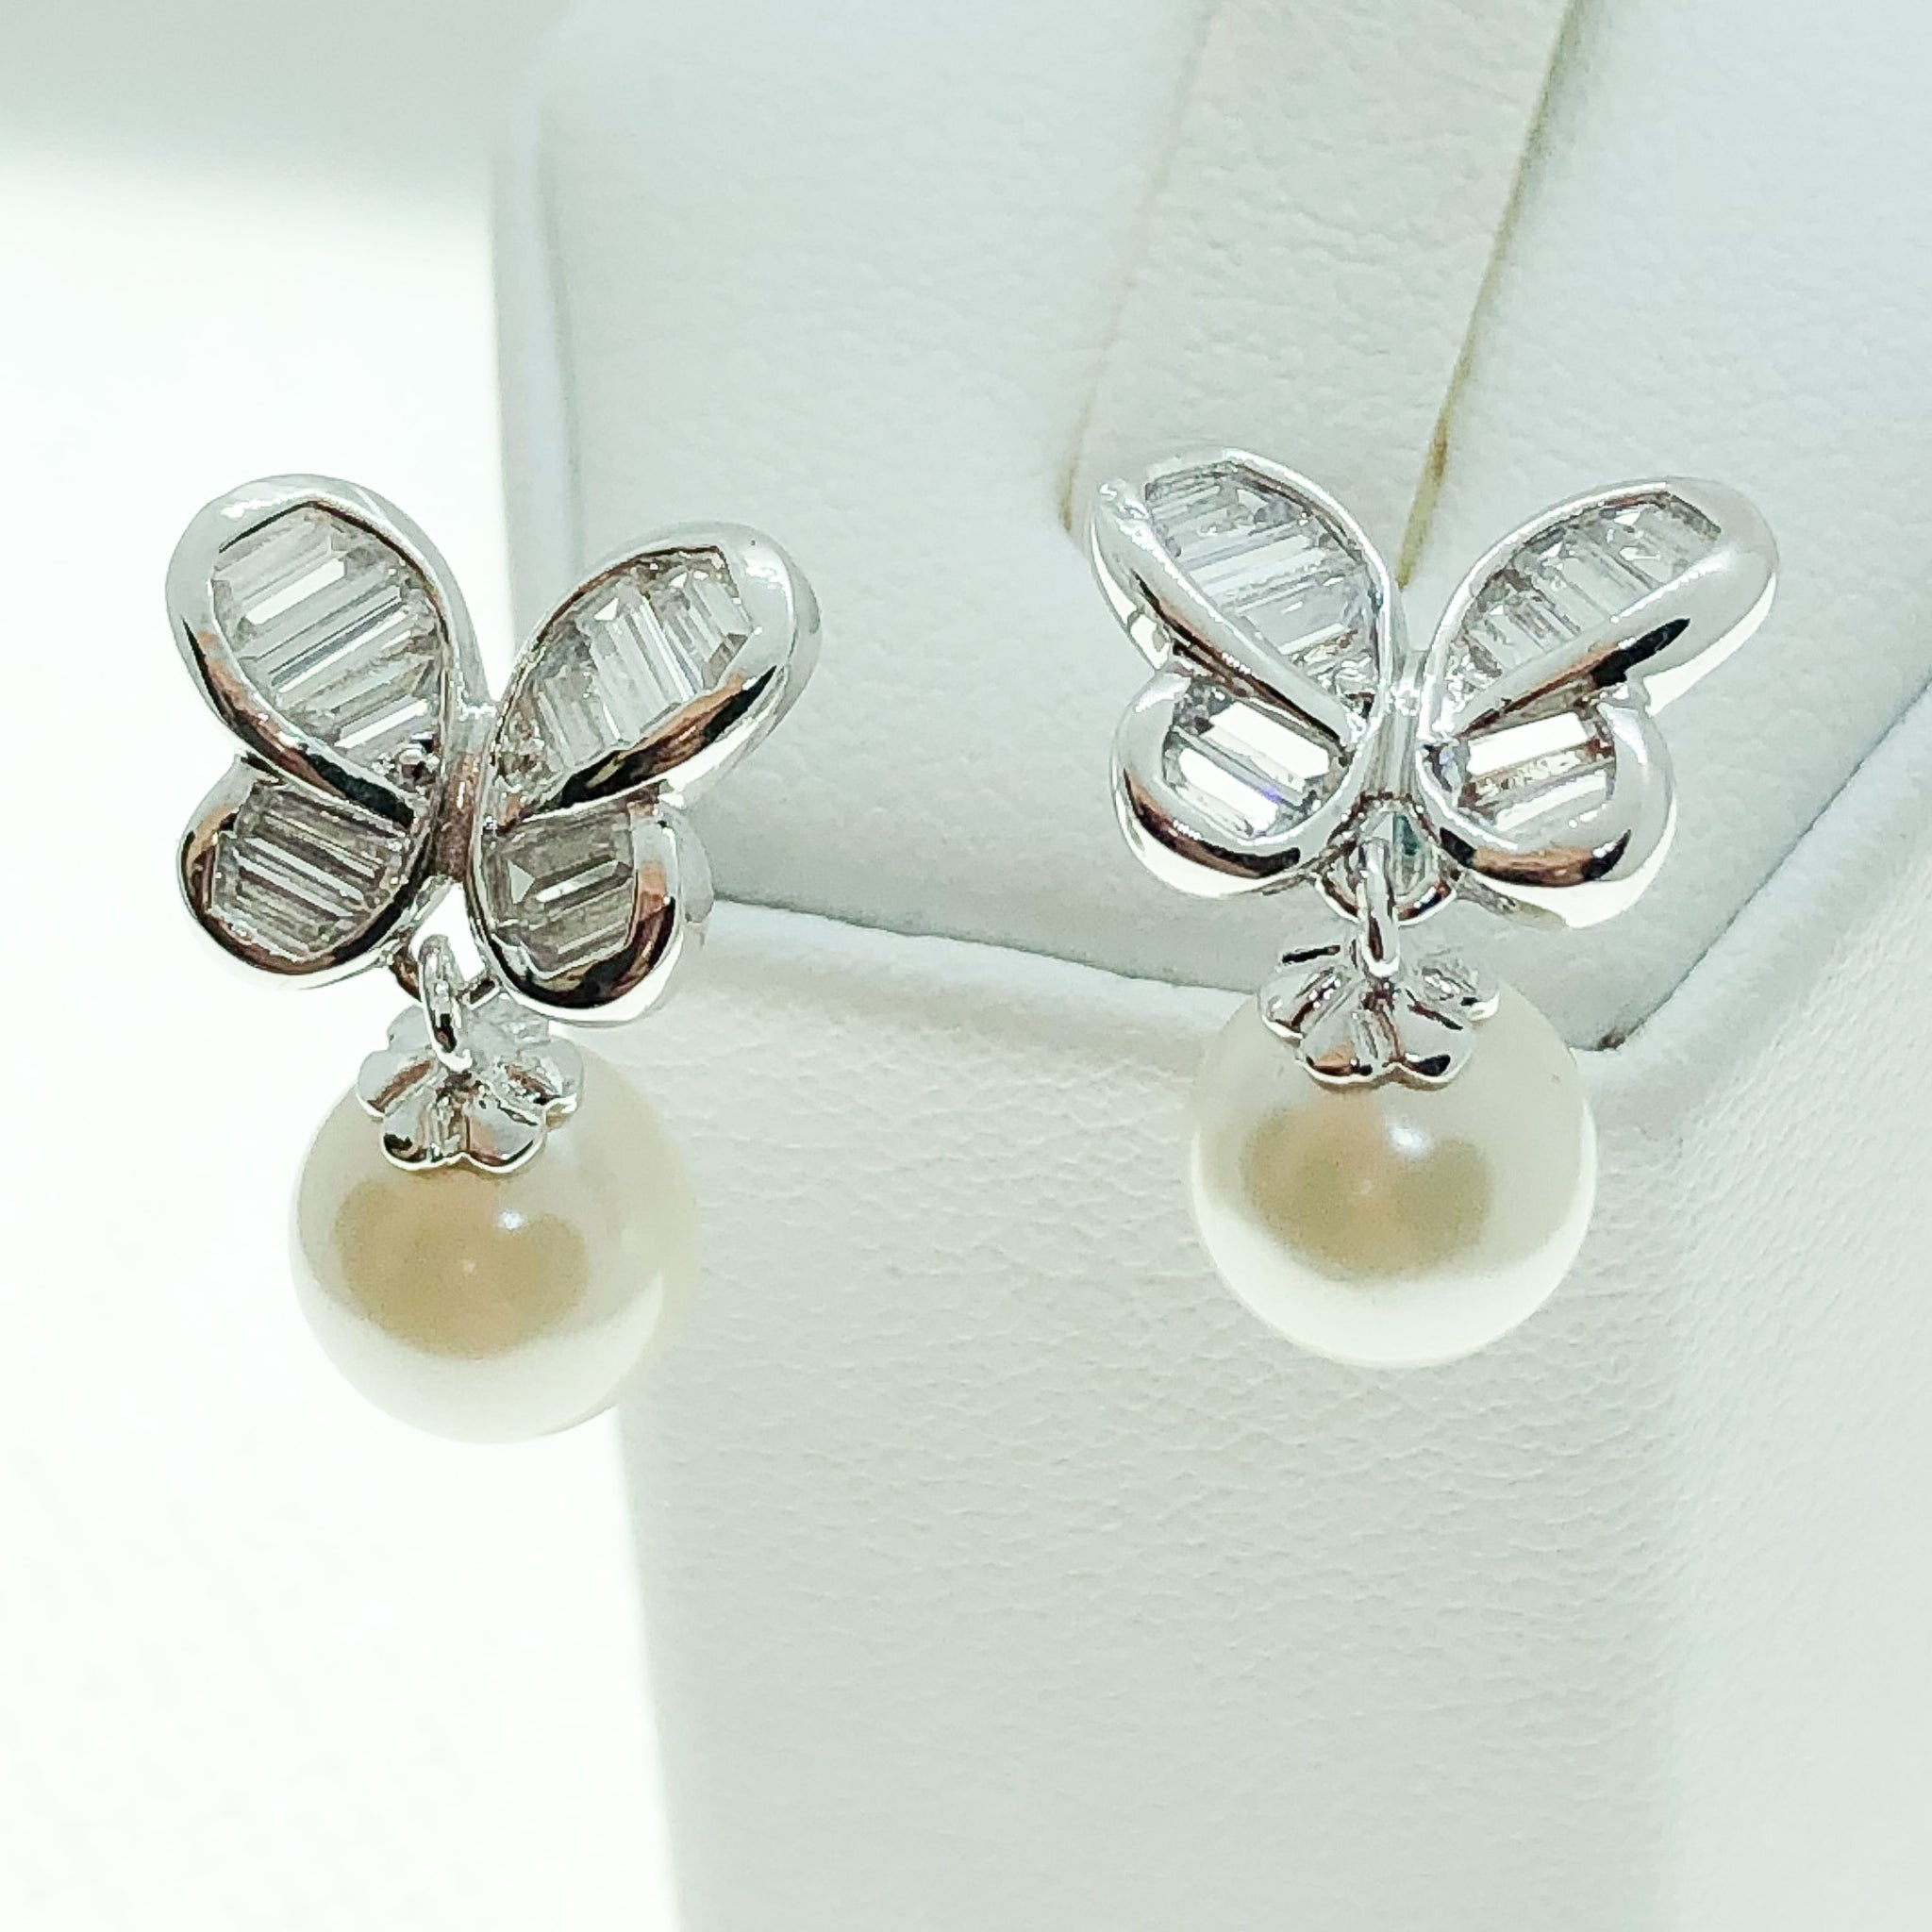 ID: E2292 Women Jewelry 18K White Gold GF Pearl with Clear Round Stones Earrings Fashion Party Lady Butterfly Drop Stud